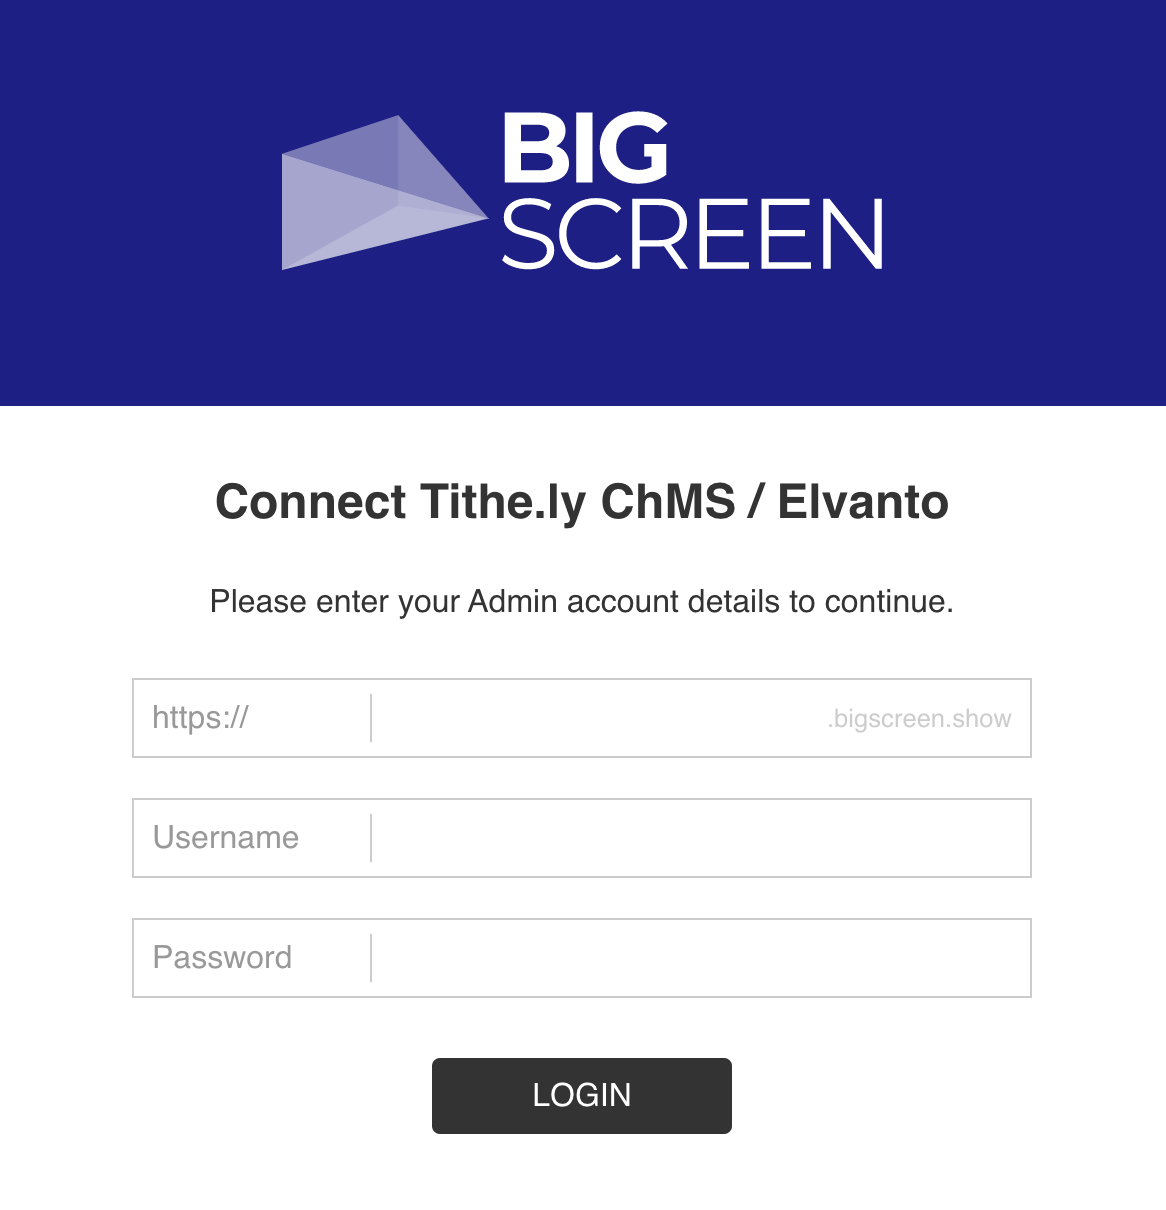 Big Screen Login to Tithe.ly ChHS/Elvanto to connect